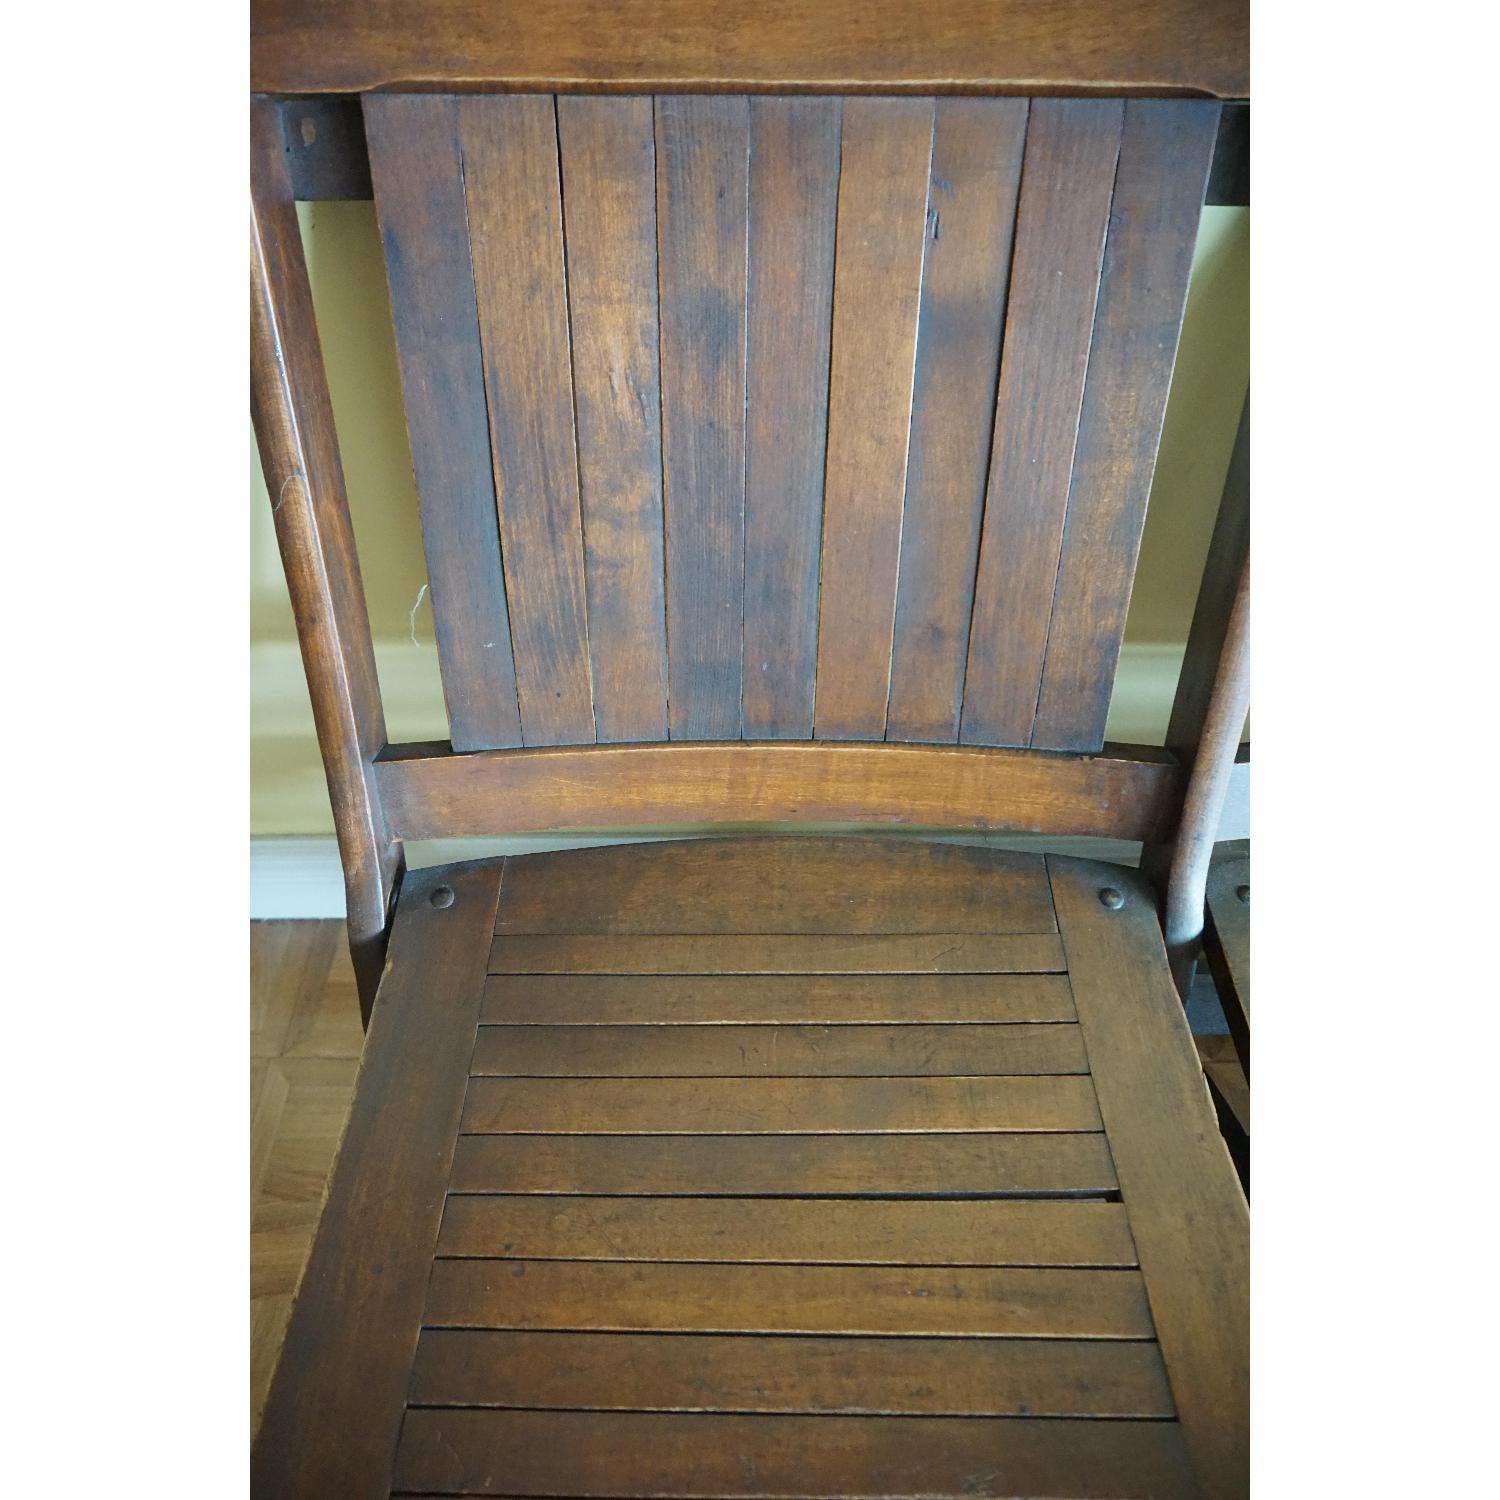 Vintage Harlem Movie Theater Wooden Bench Seats - image-4